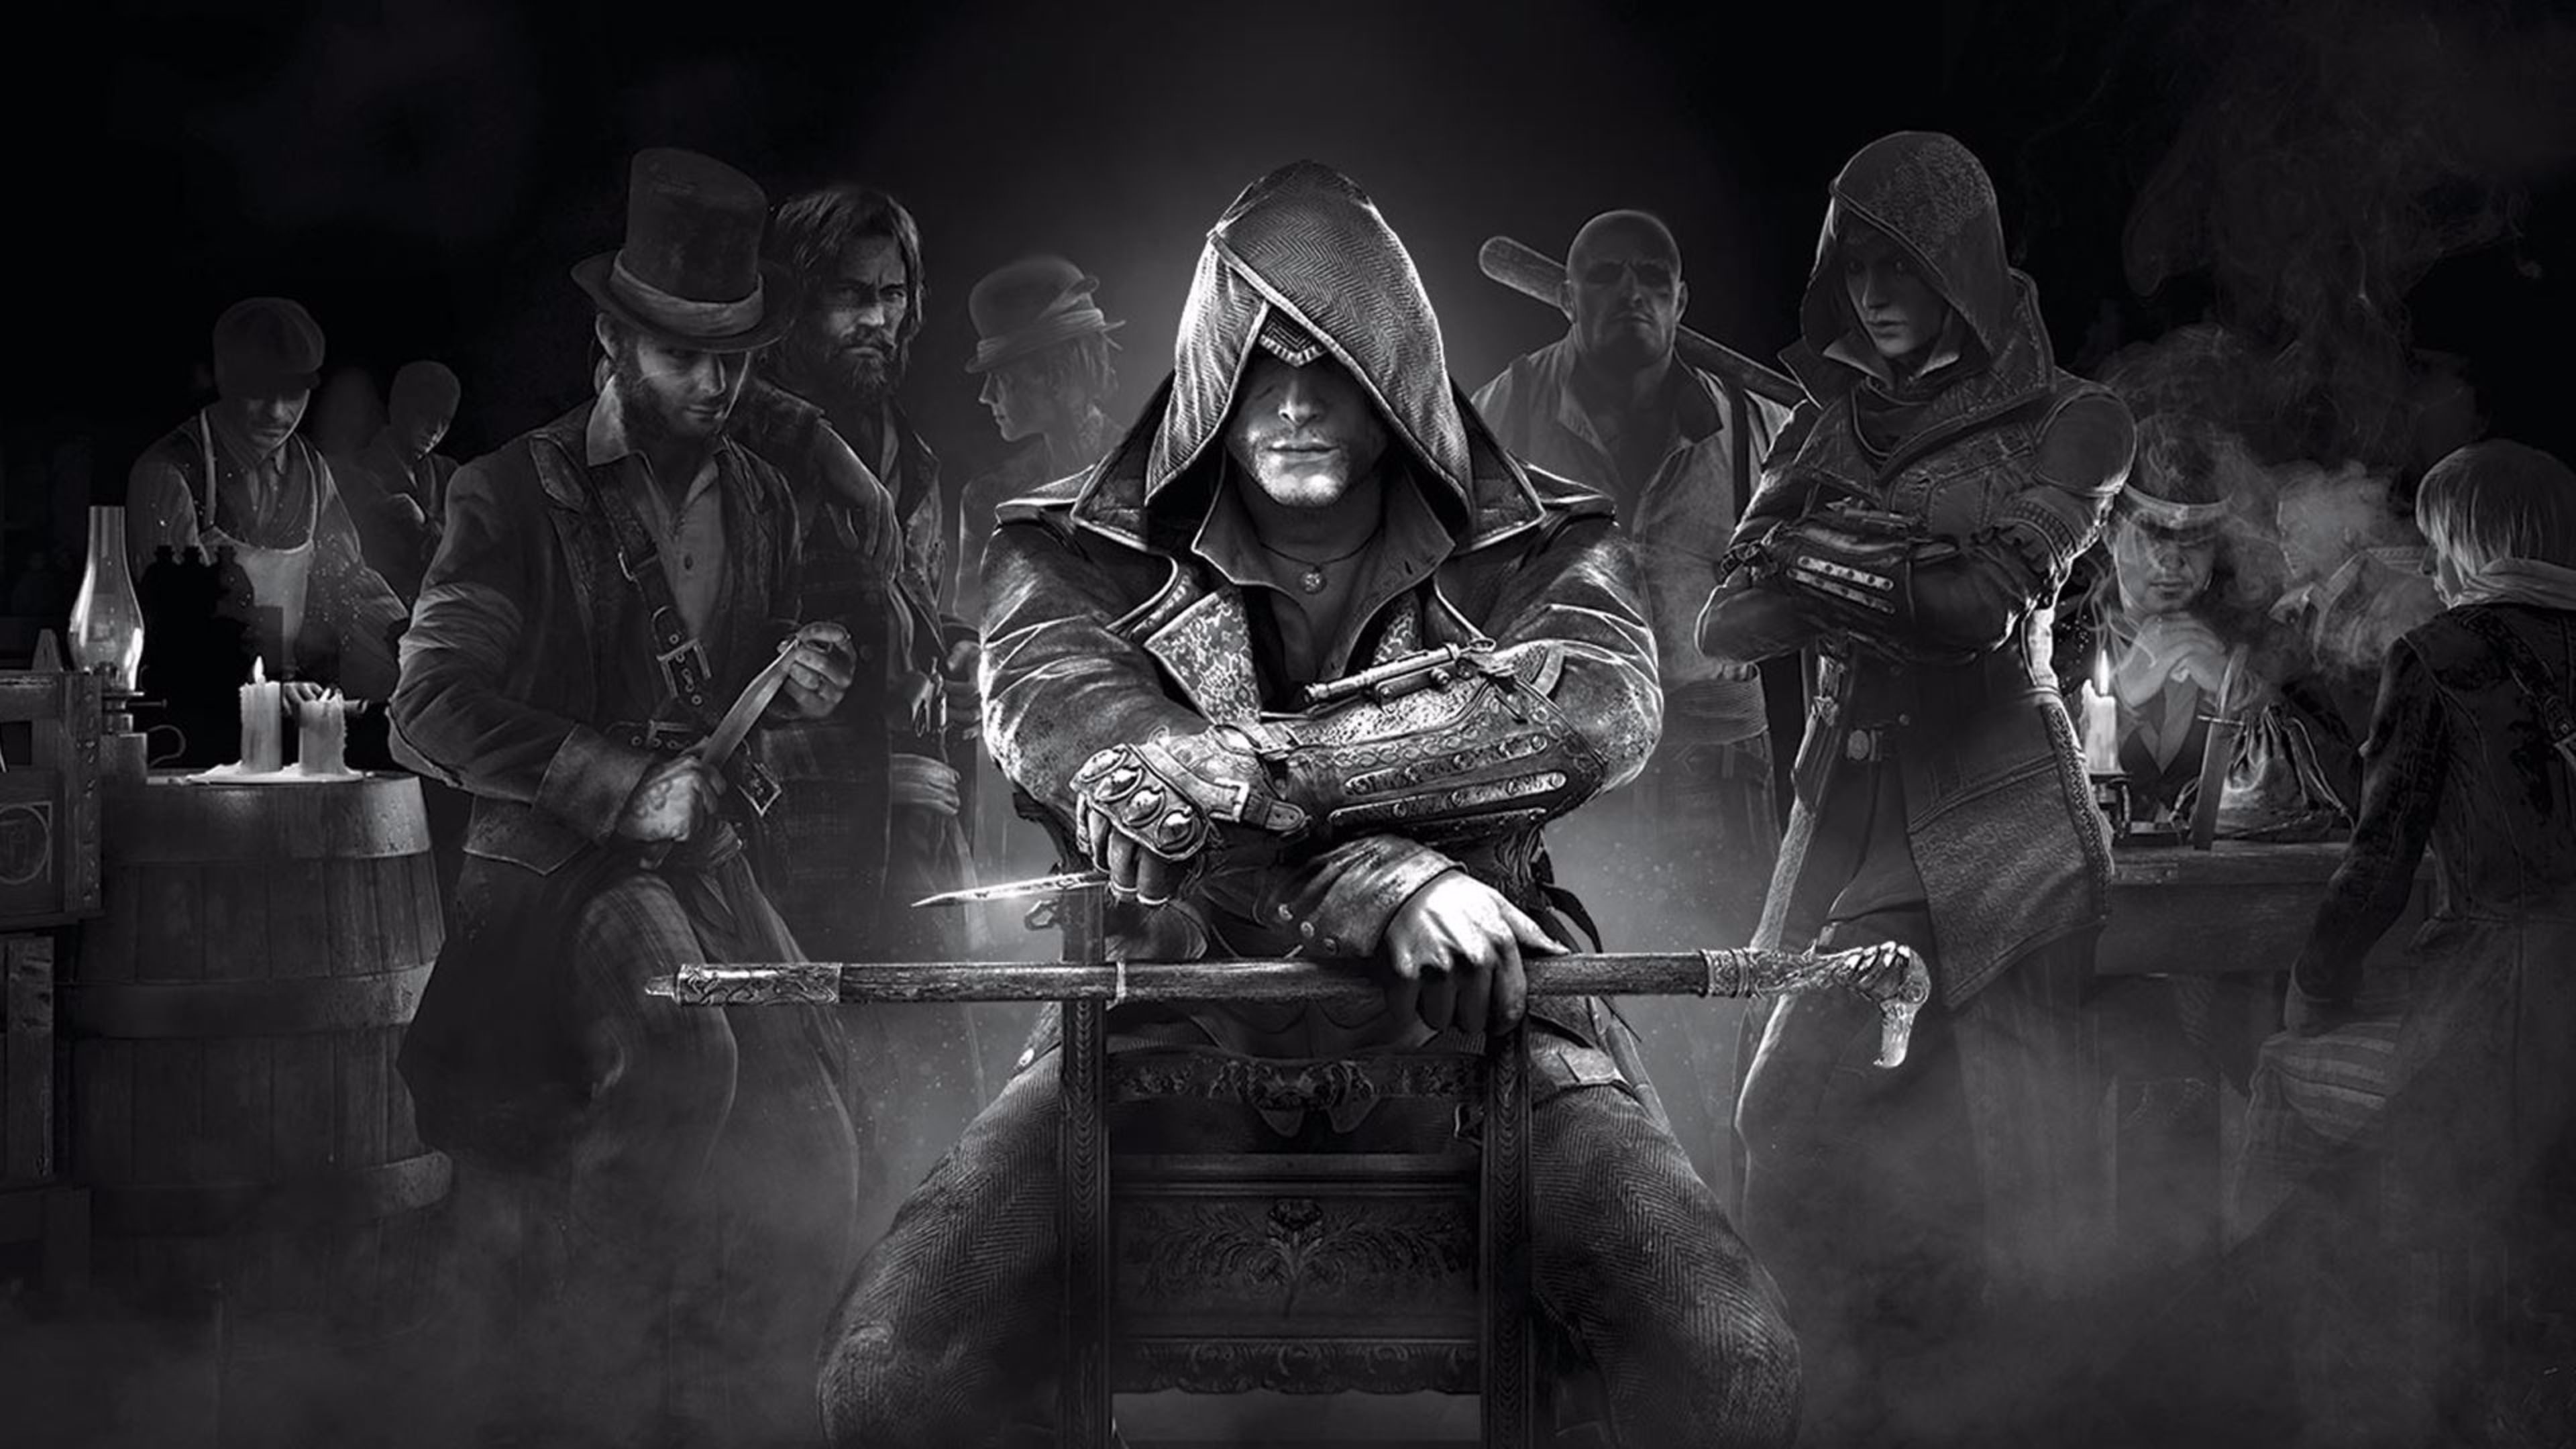 Assassins Creed Syndicate HD wallpapers free download 3840×2160